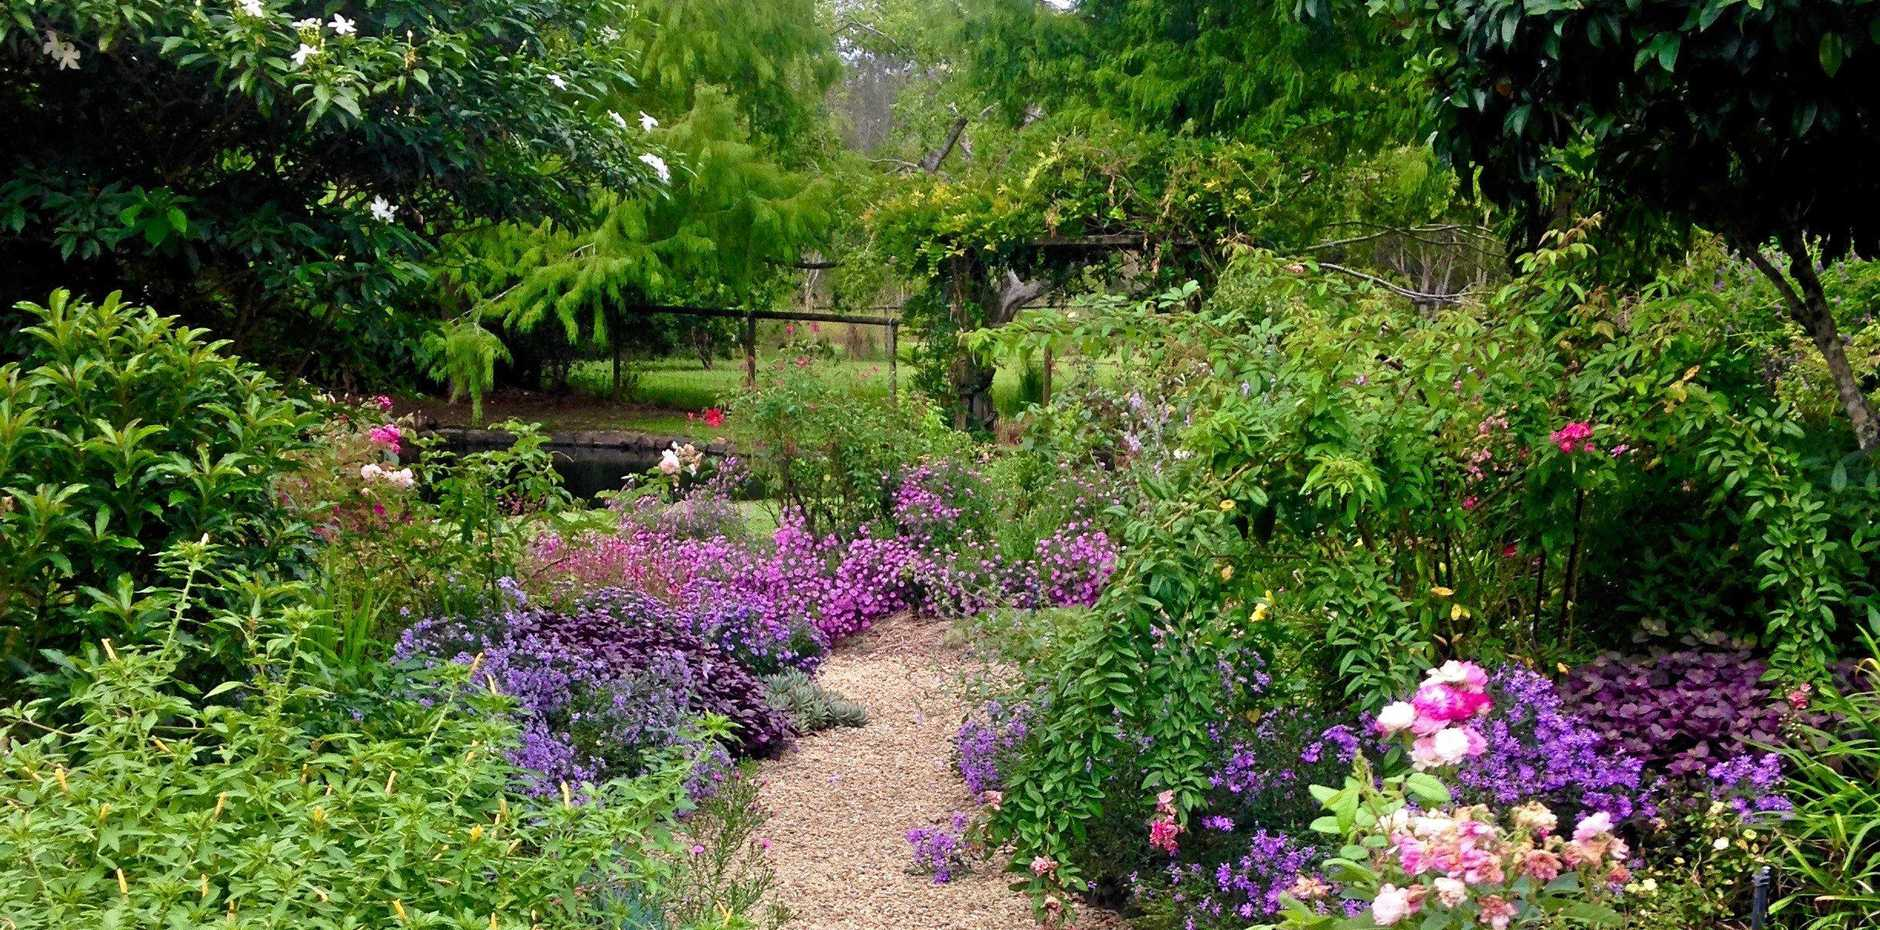 LAST CHANCE: This sprawling cottage garden at Buderim is opening its gates in April.